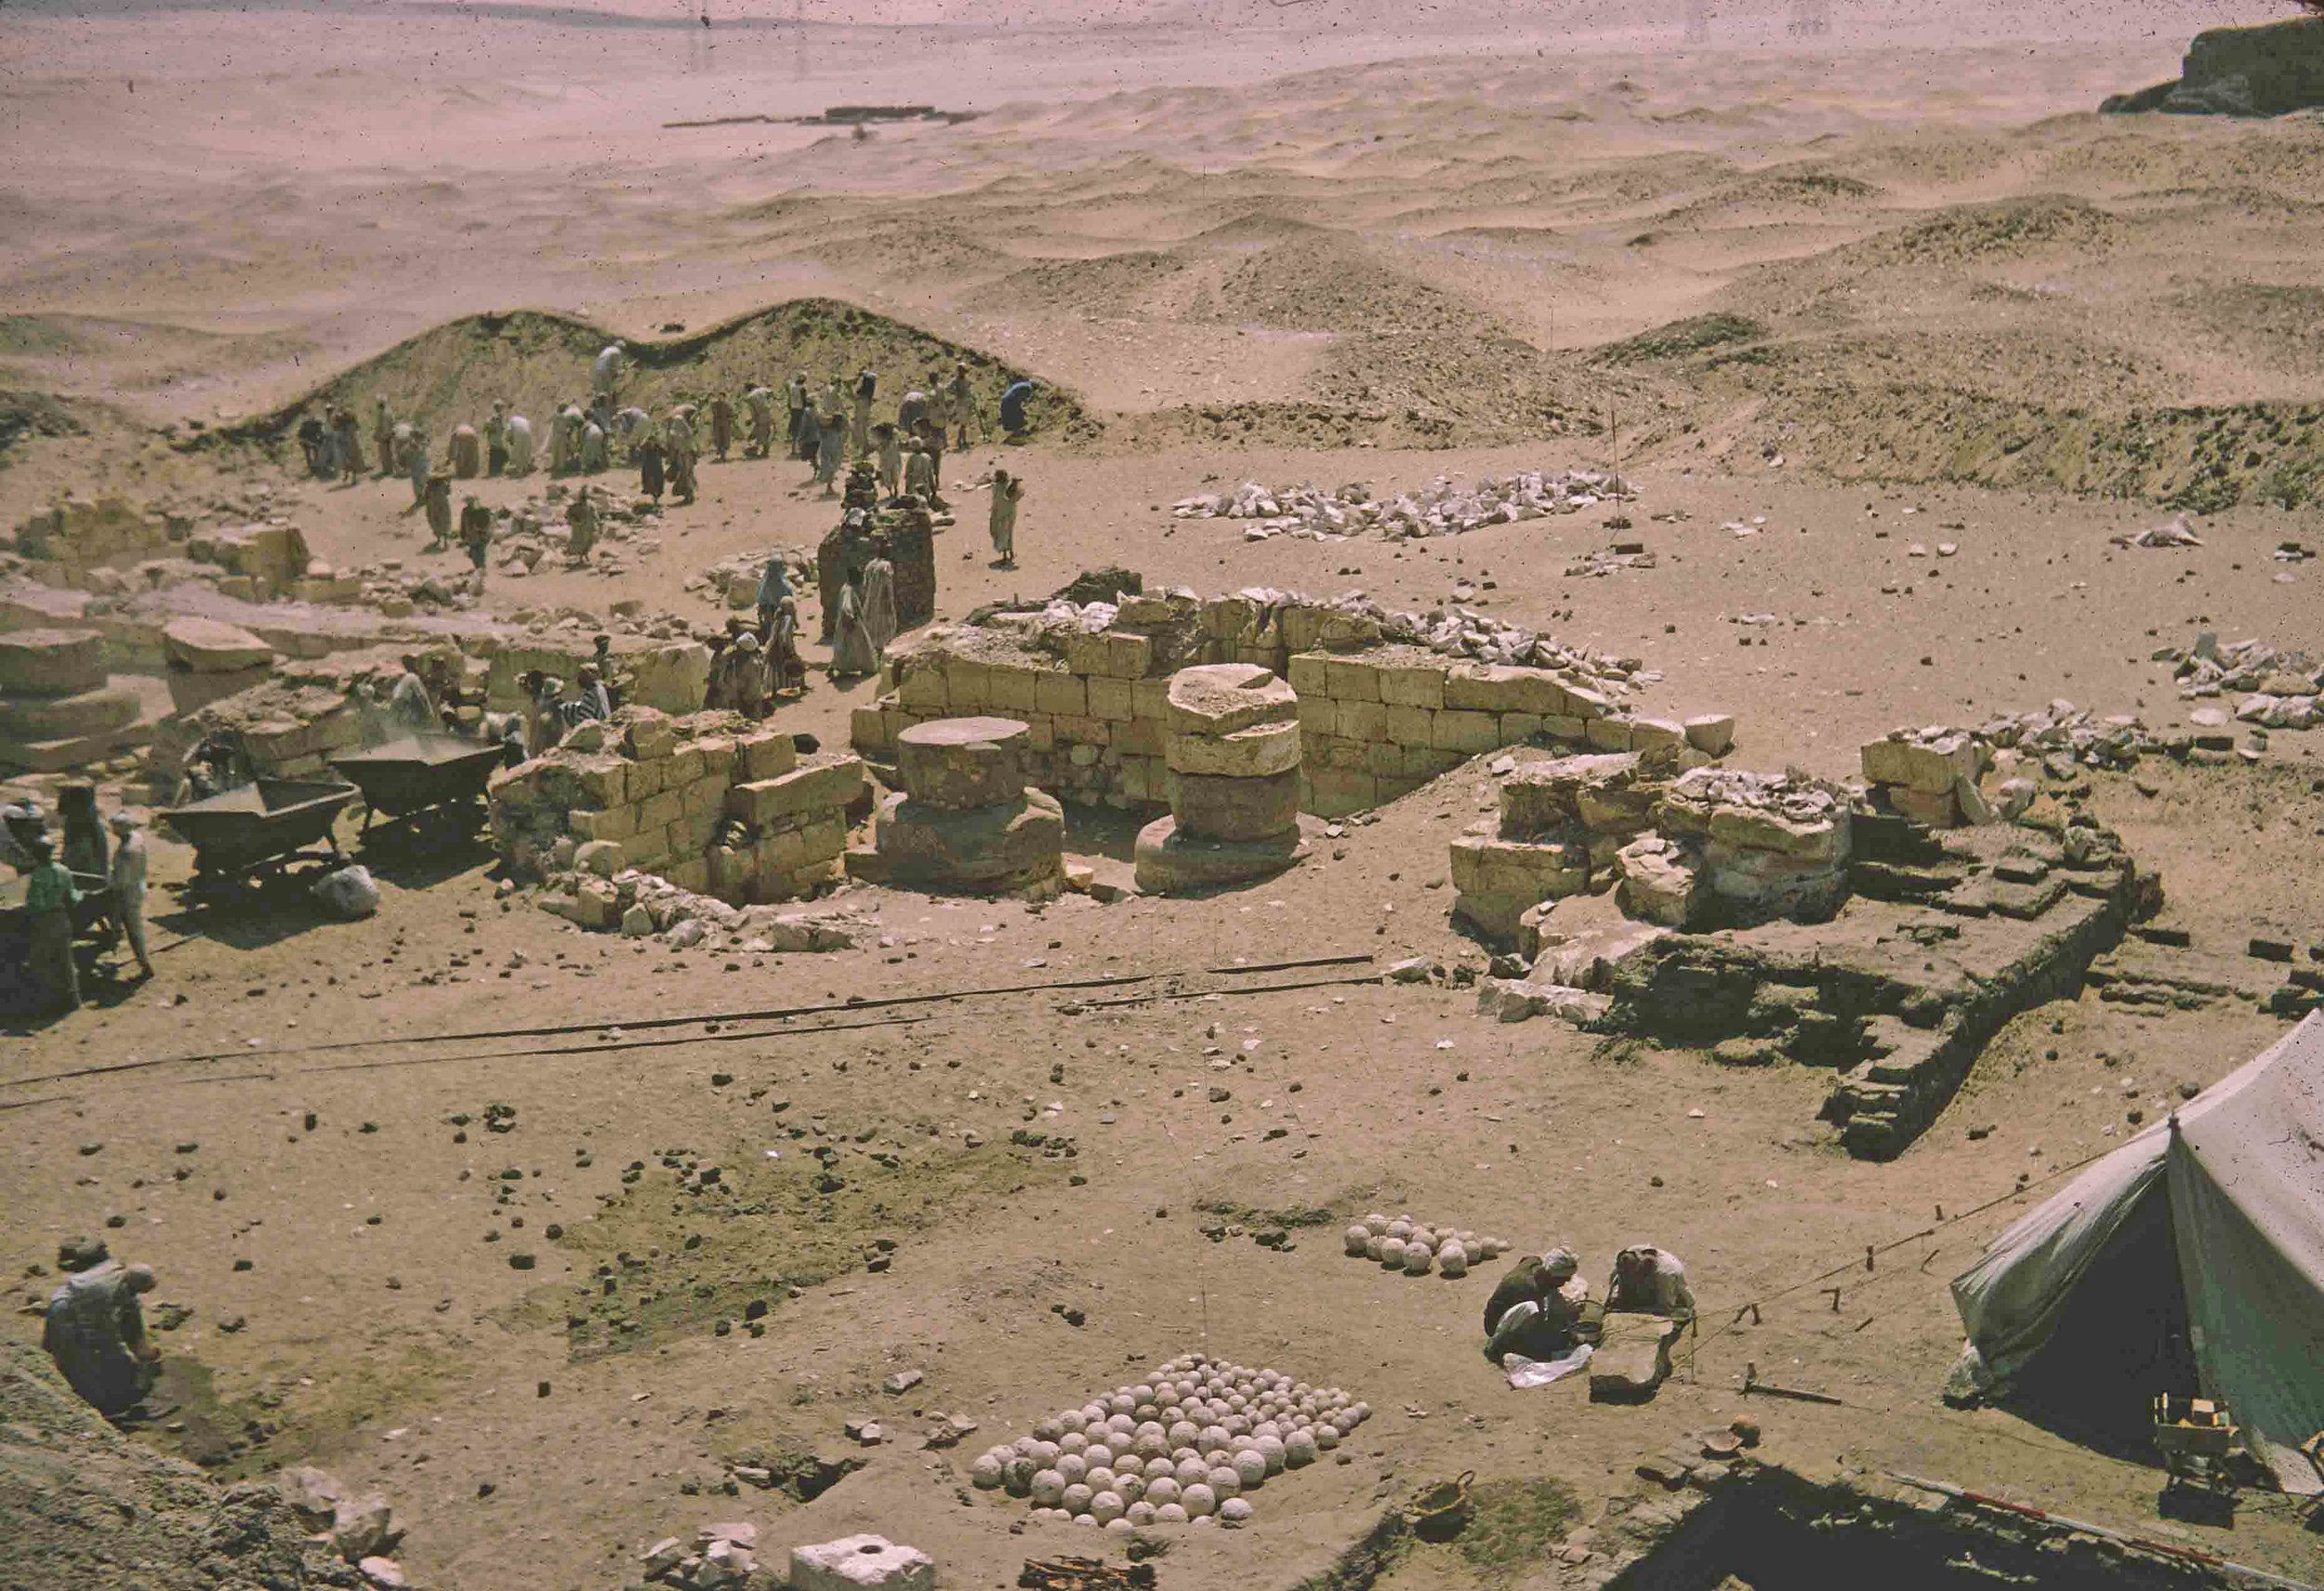 "Fig. 4. The Penn-Yale excavations, directed by David O'Connor and William Kelly Simpson, at the ""Portal"" Temple of Ramses II during the Expedition's first season at Abydos in 1967. The excavated stockpile of ballista ammunition probably dating to the Theban revolt c. 199 BCE is visible in the foreground. Photo: David O'Connor © North Abydos Expedition (formerly Penn-Yale-IFA), courtesy of the Penn Museum."